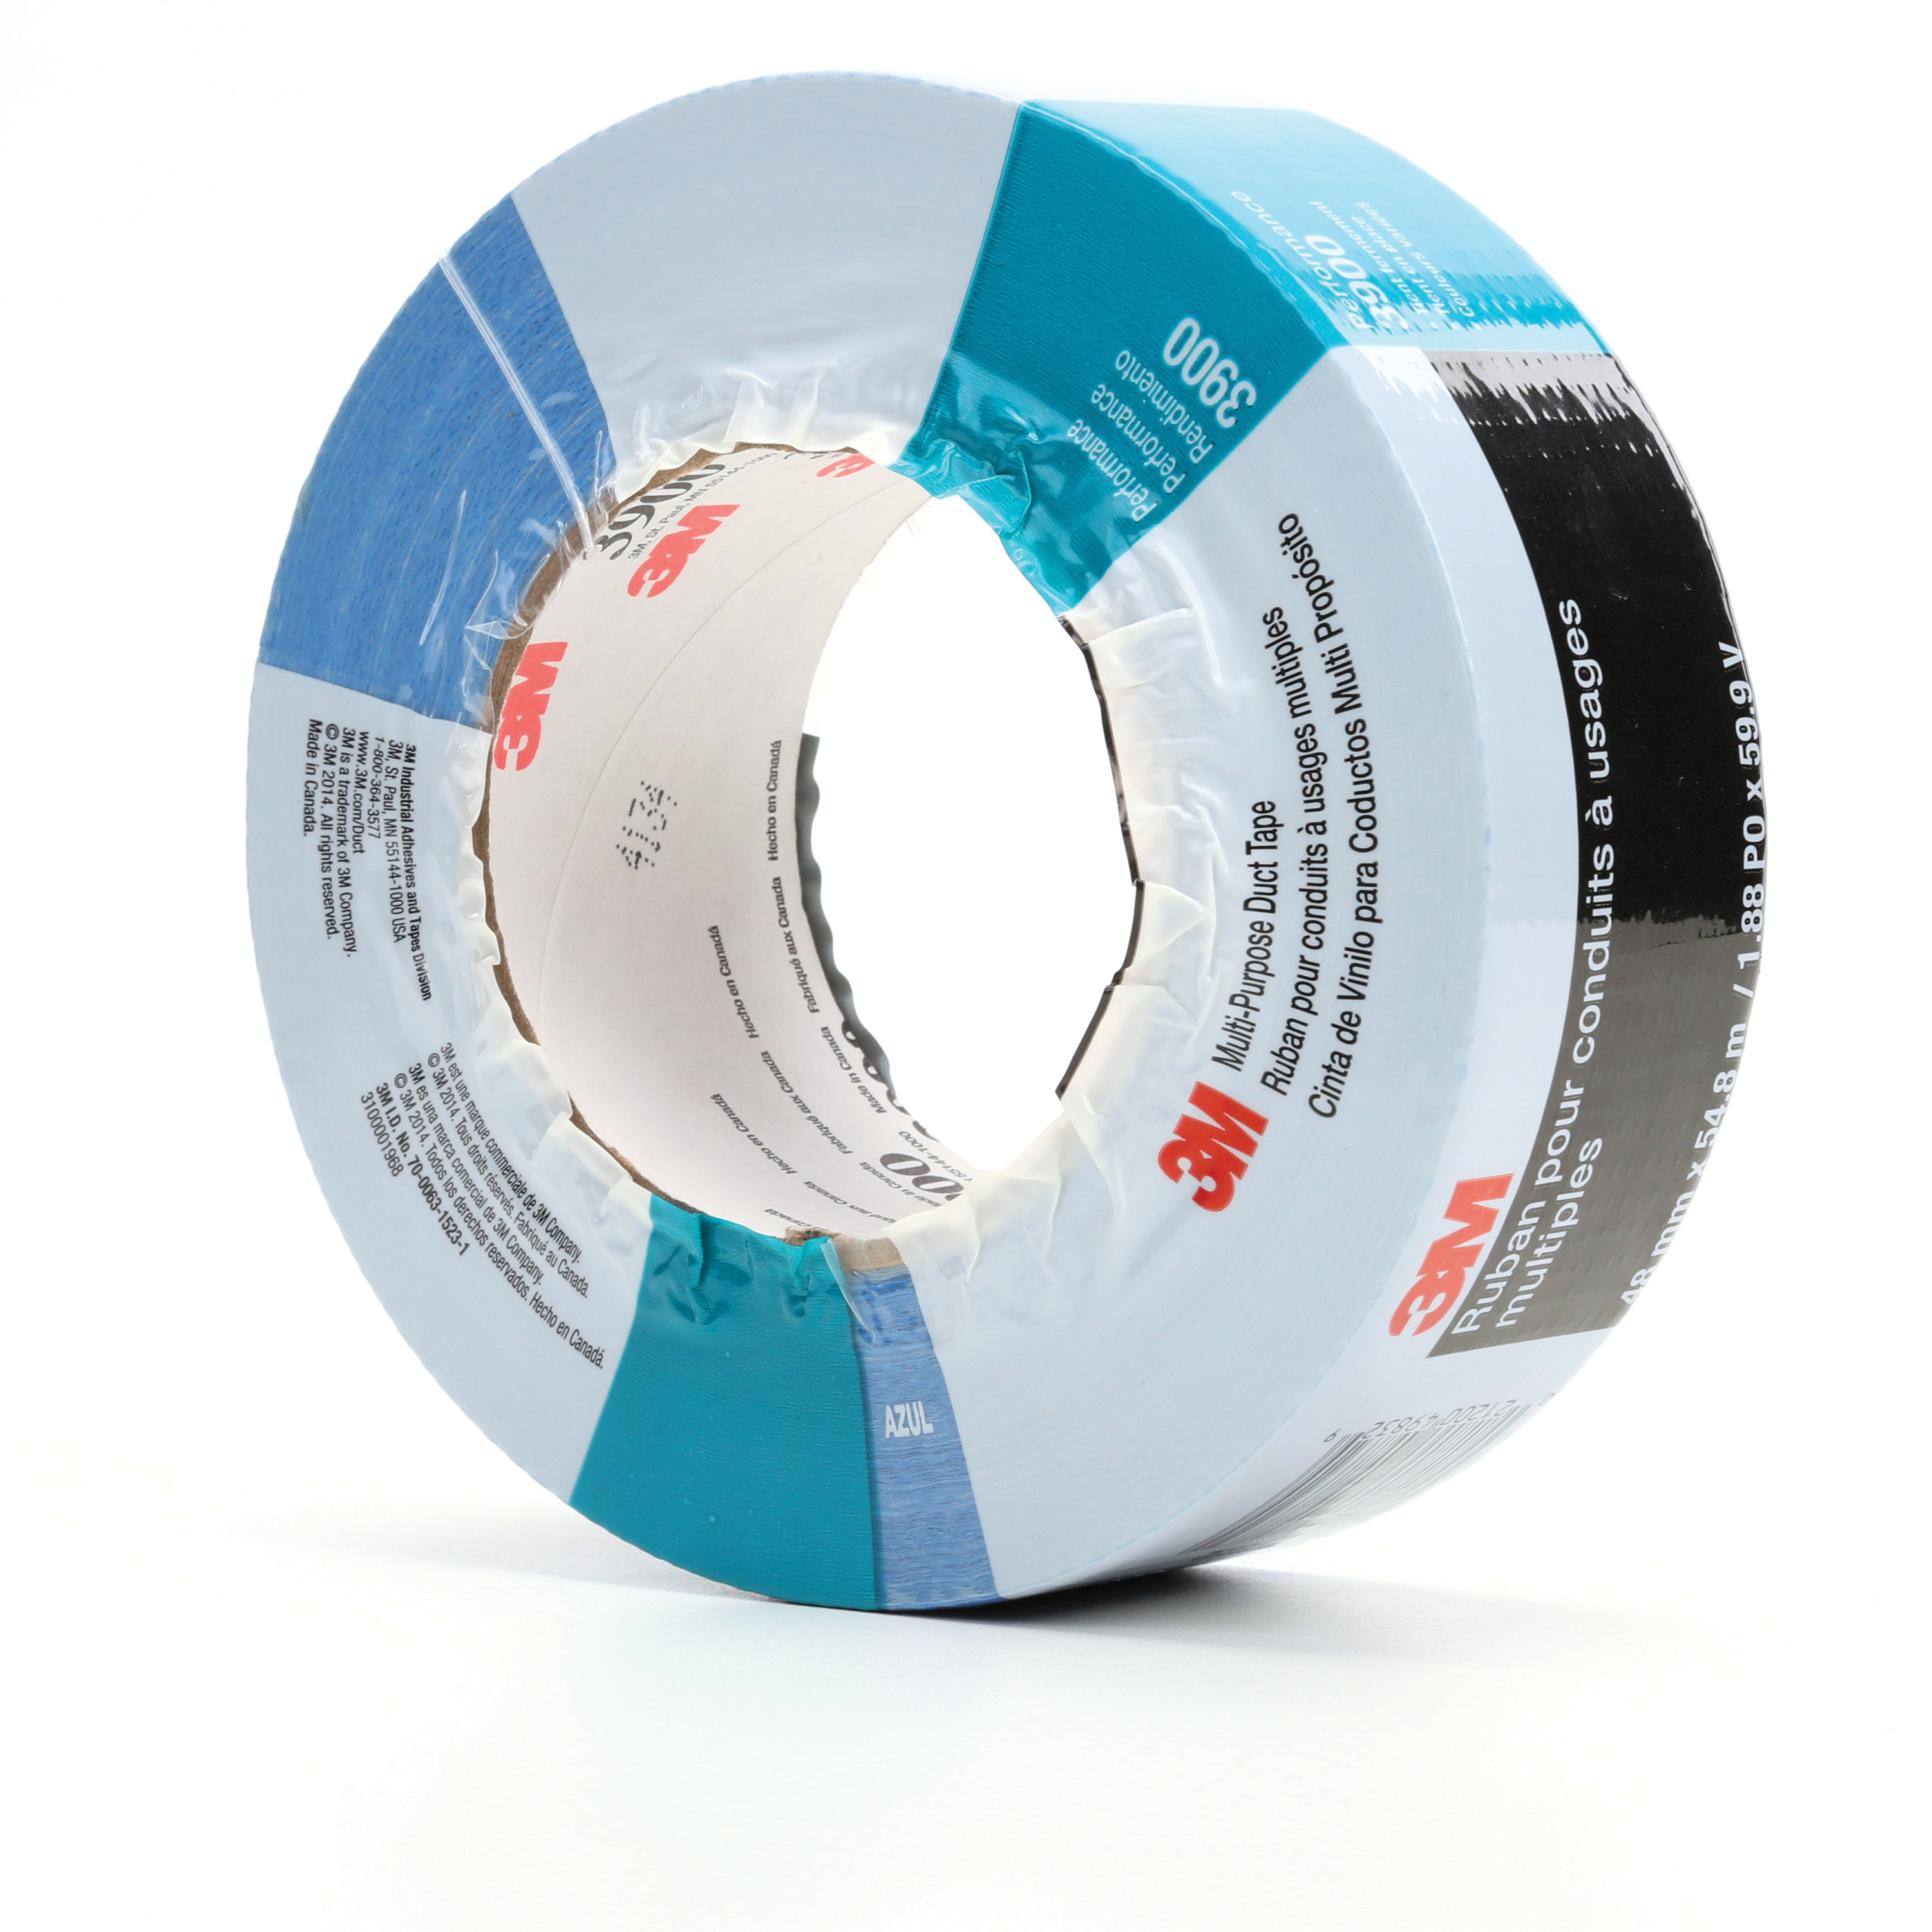 3M™ 021200-49832 Multi-Purpose Duct Tape, 54.8 m L x 48 mm W, 7.6 mil THK, Rubber Adhesive, Polyethylene Over Cloth Scrim Backing, Blue